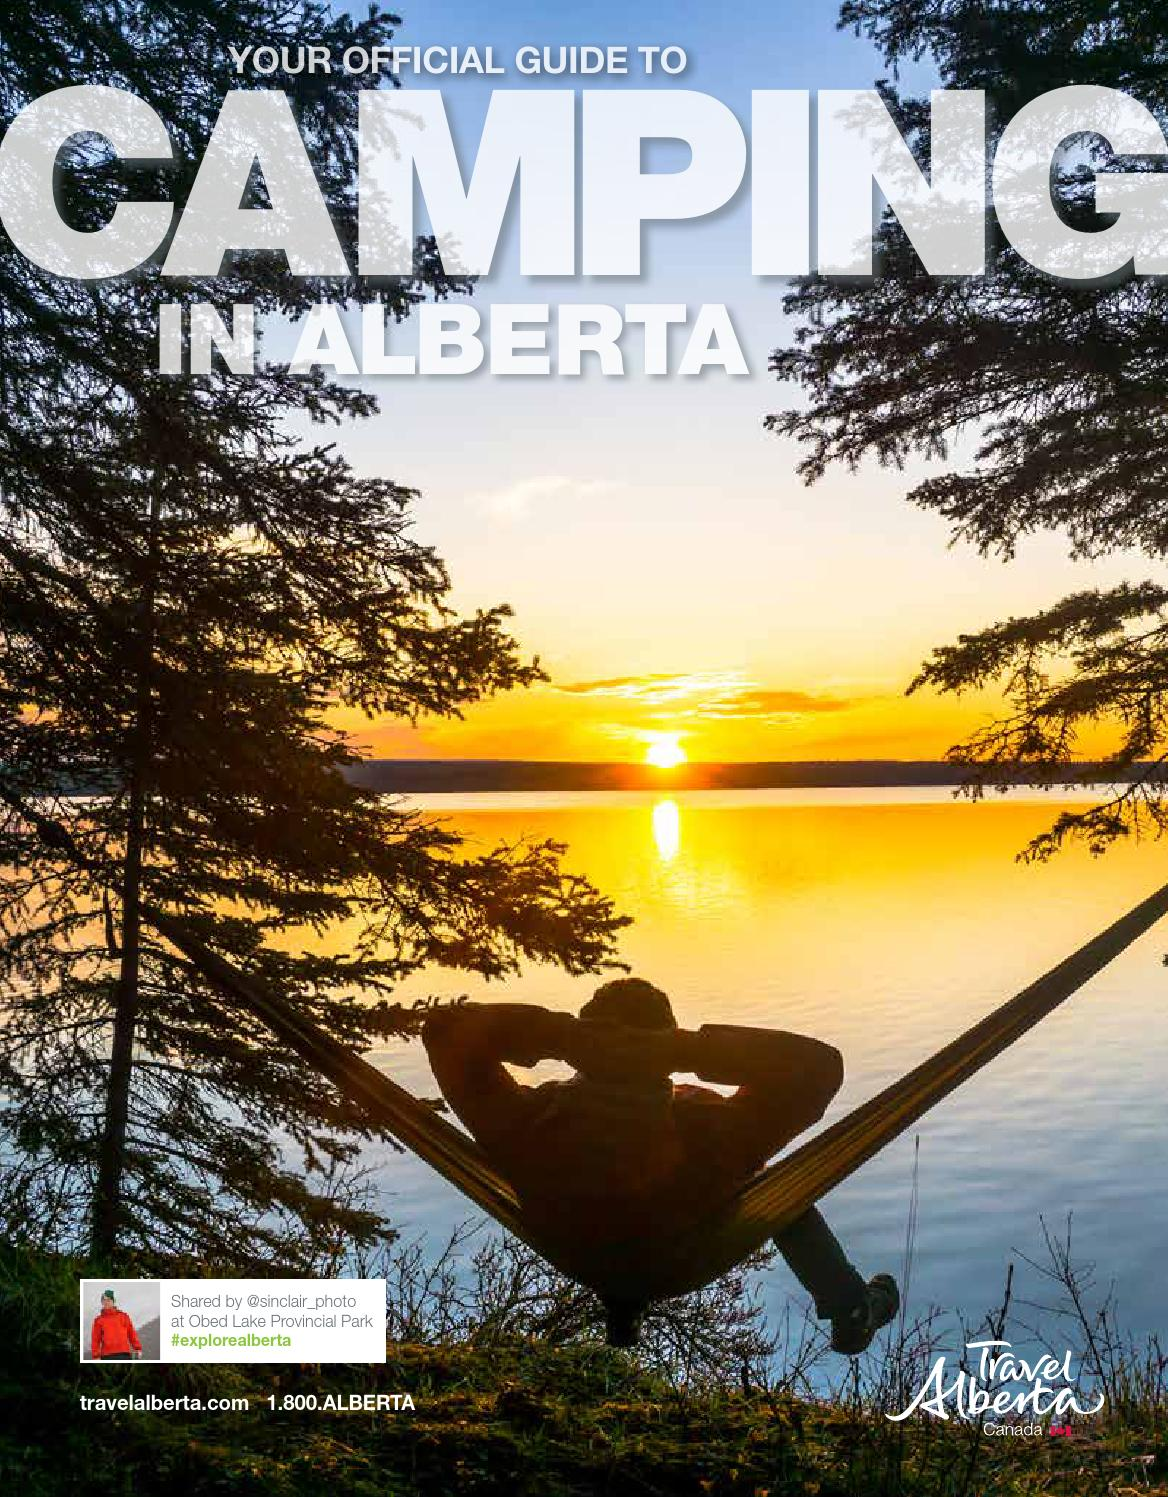 Camping in alberta guide 2016 by